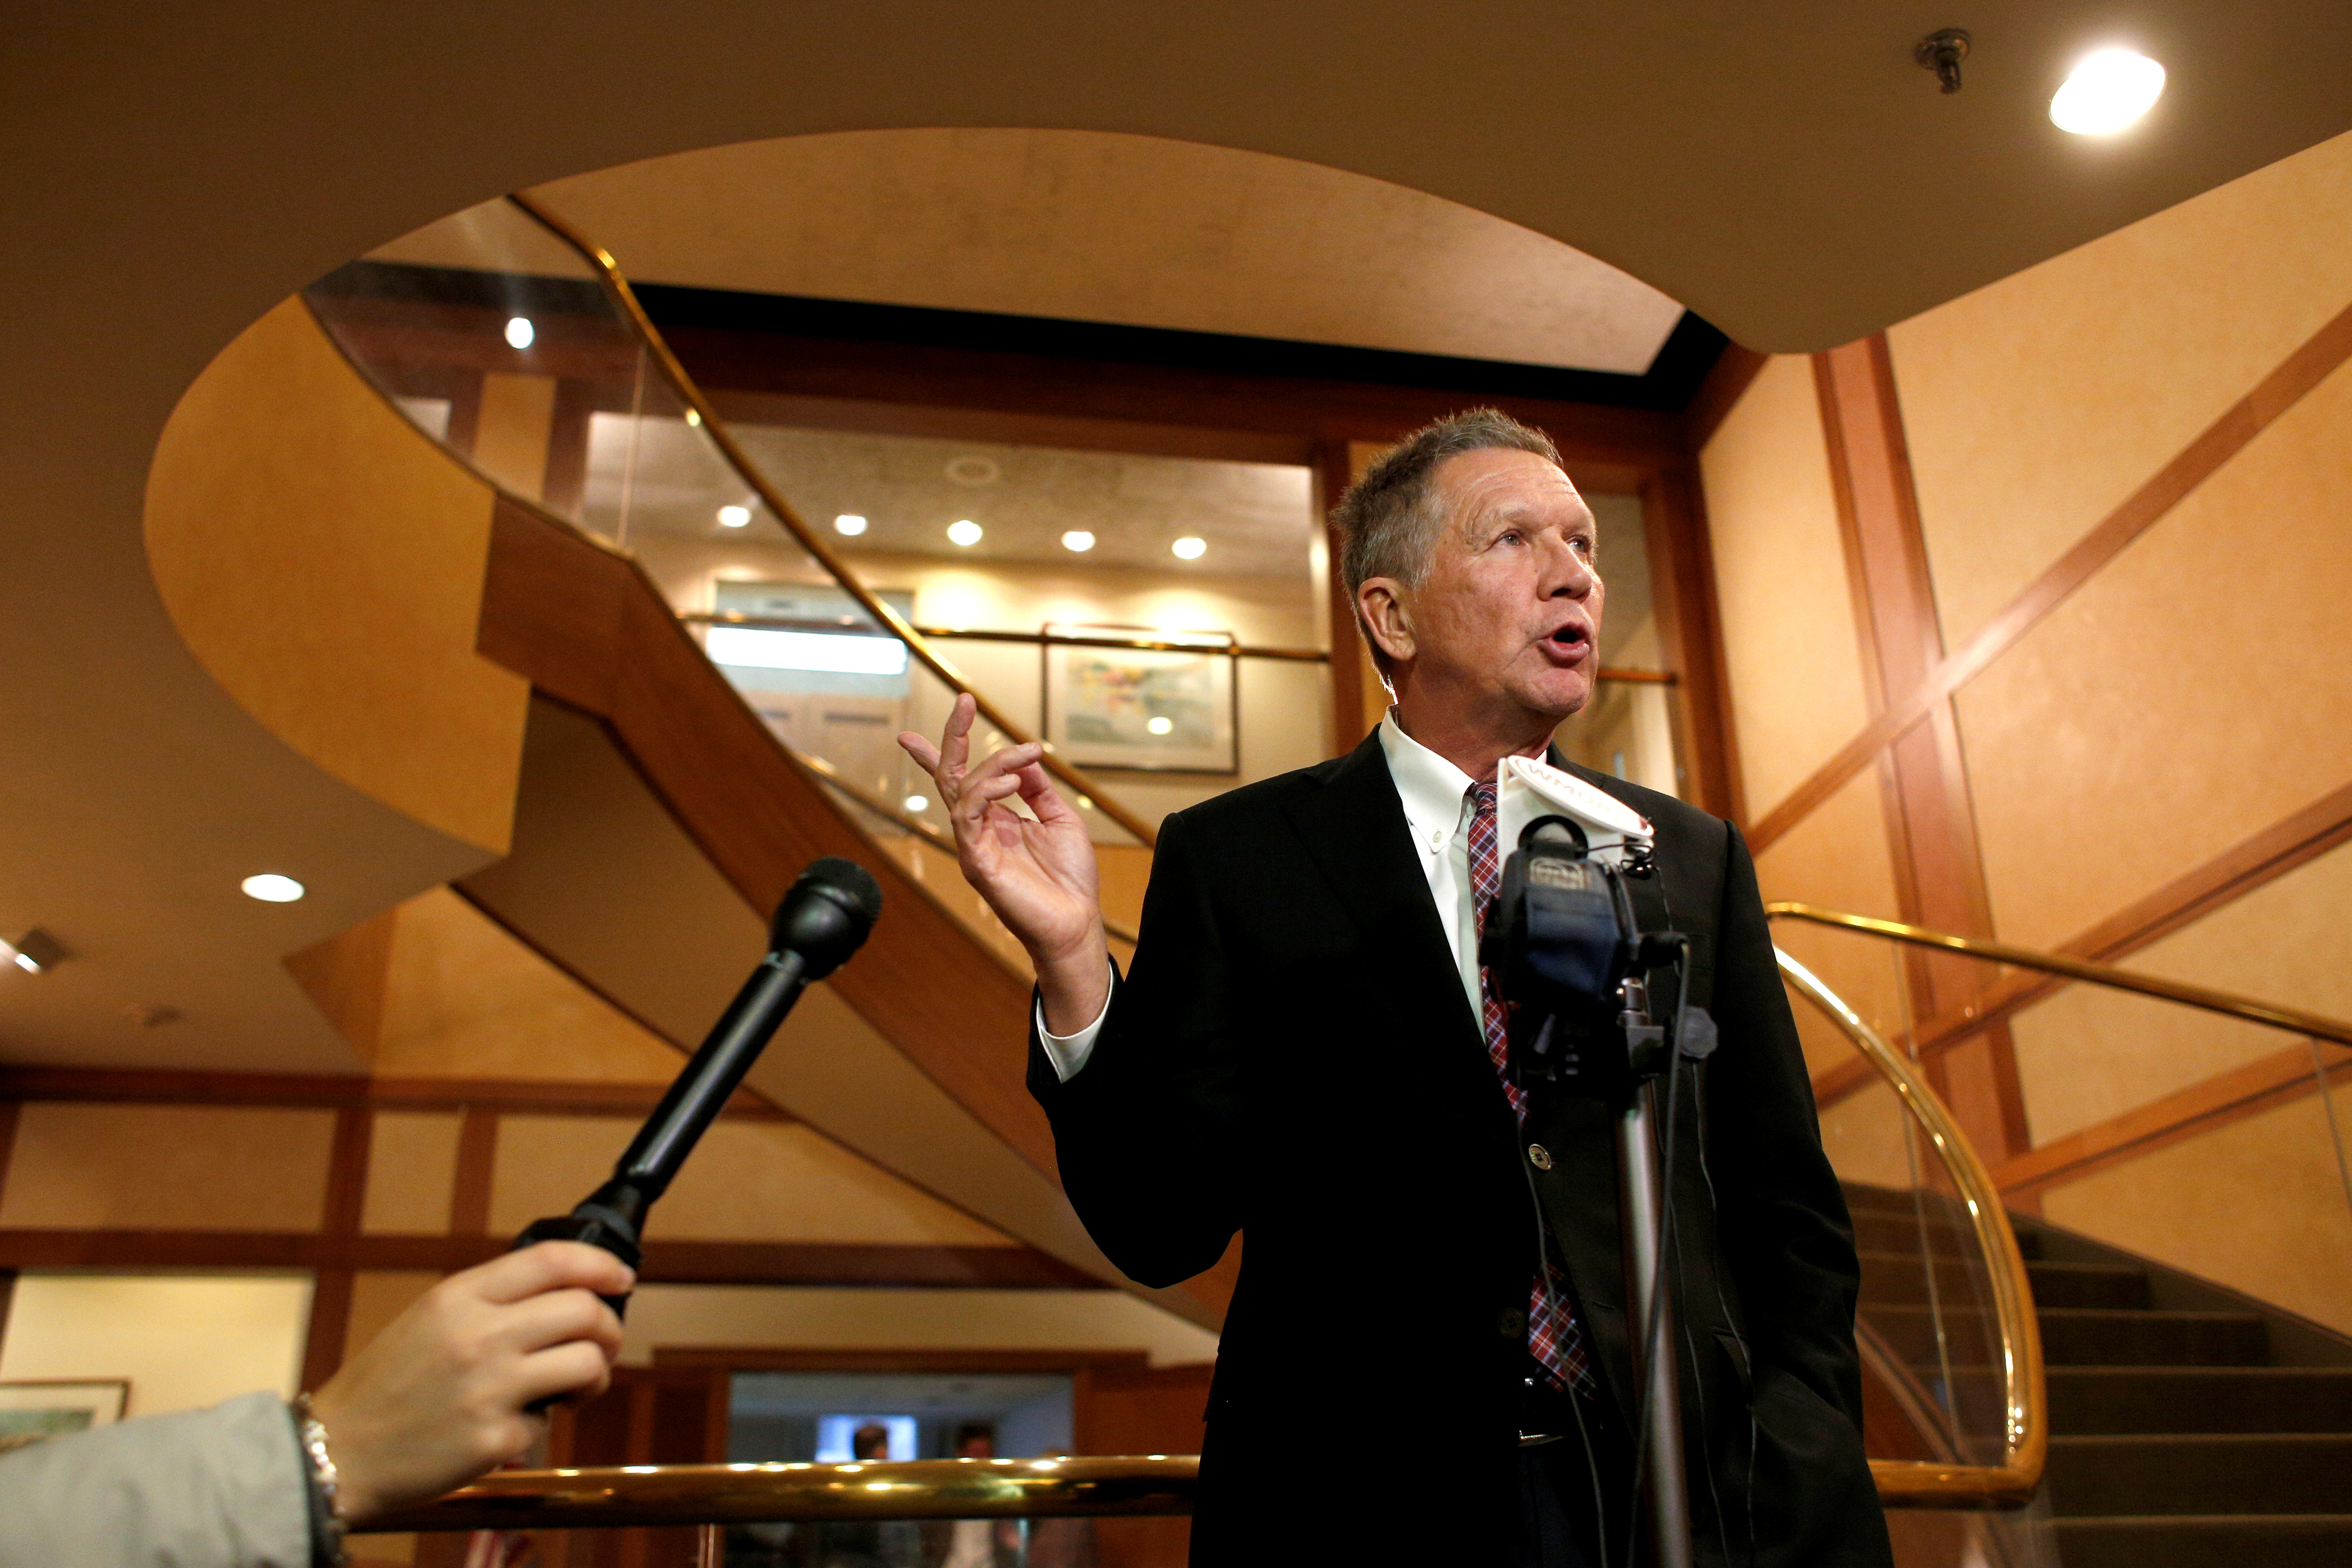 Ohio Governor and former presidential candidate John Kasich speaks to the press in Concord